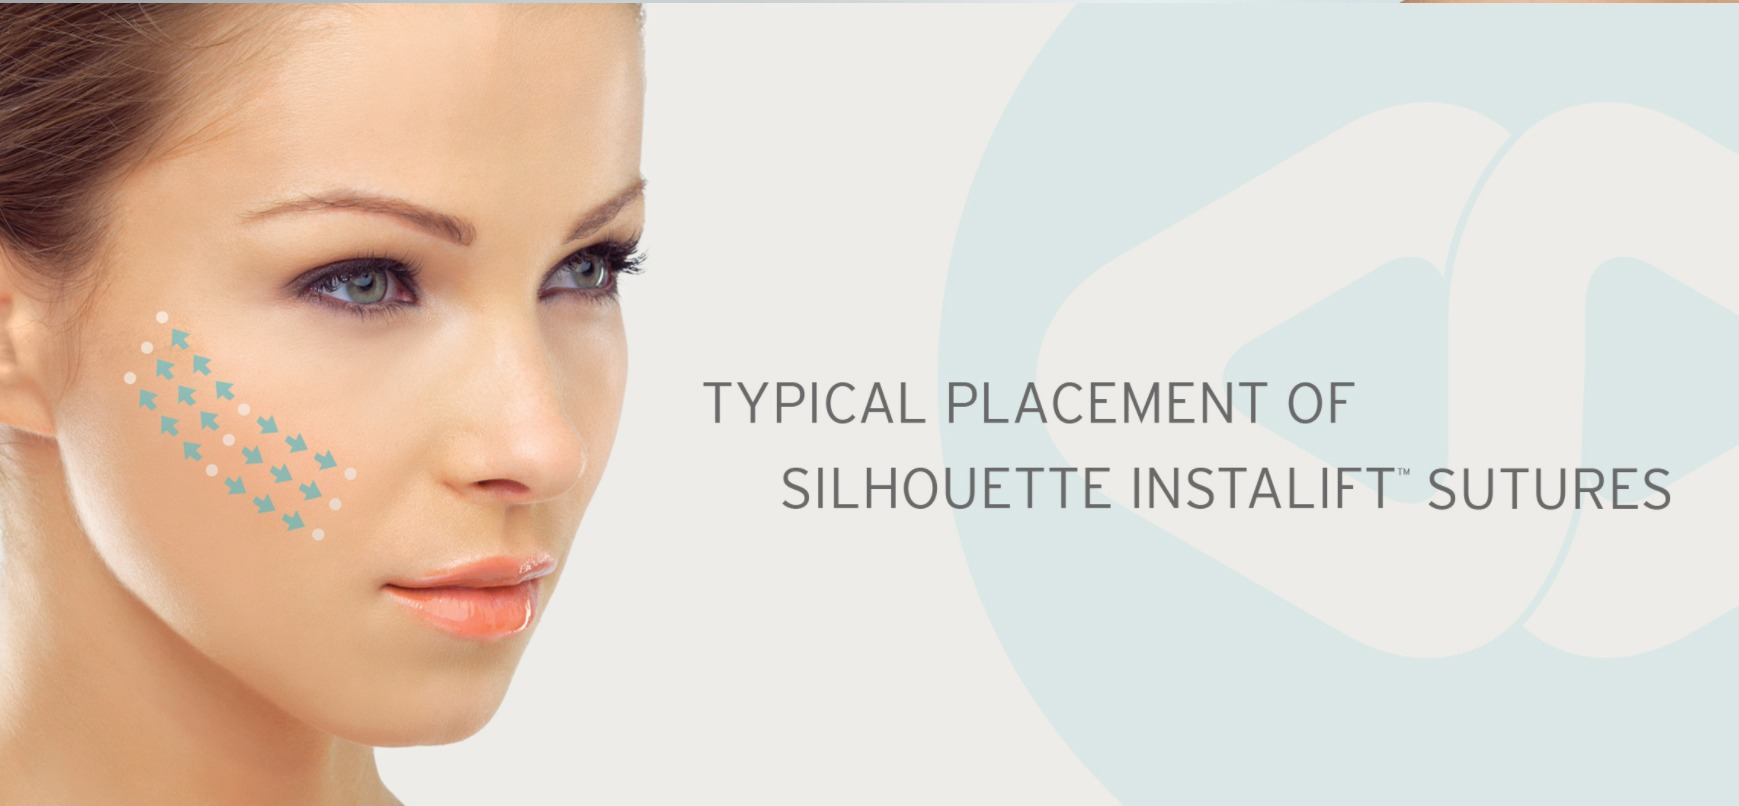 NON-SURGICAL-FACELIFT-SILHOUETTE-INSTALIFT Non-Surgical Facelift | Northern Virginia